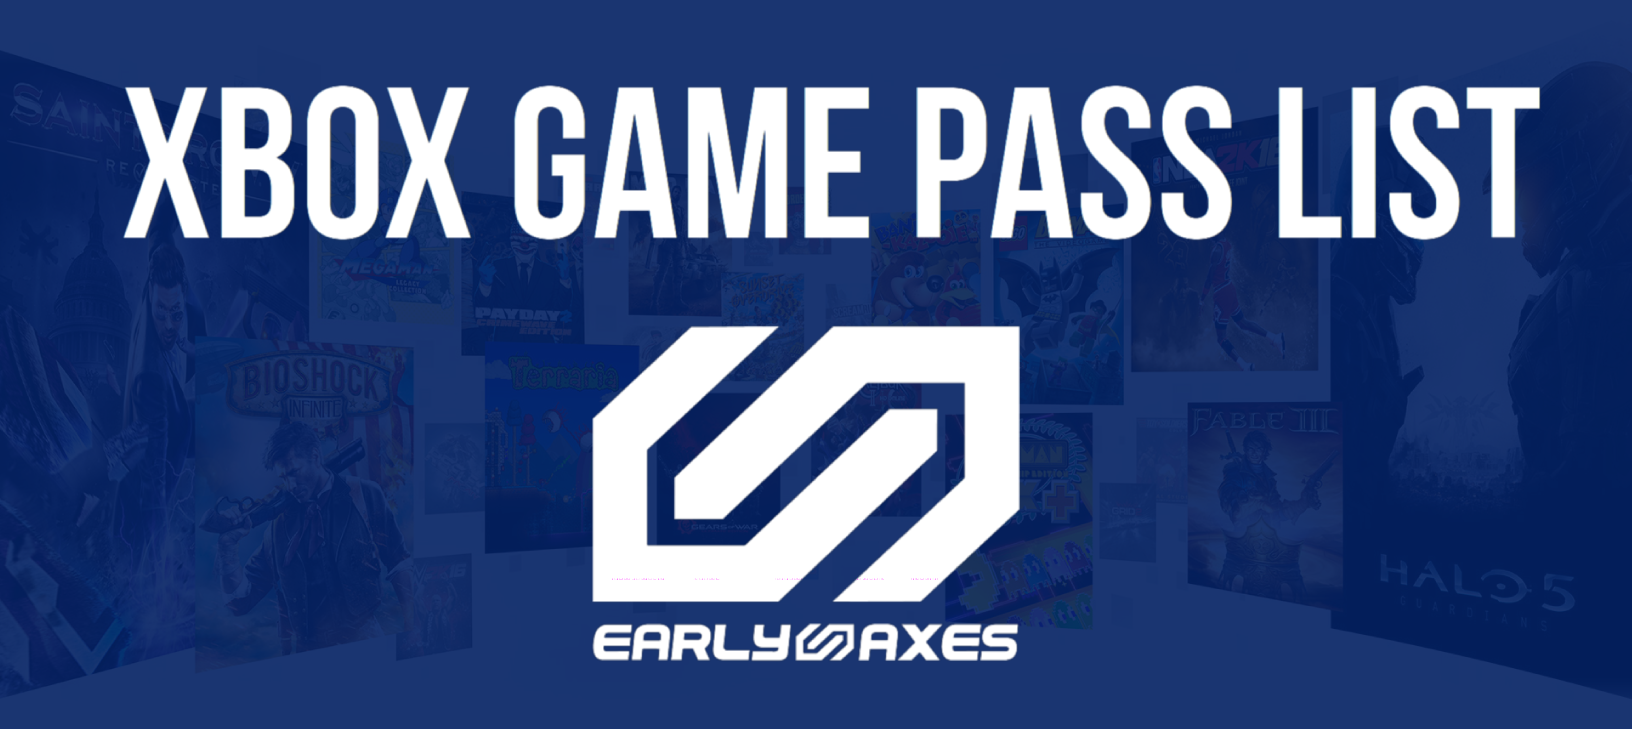 Xbox Games Pass List | Early Axes